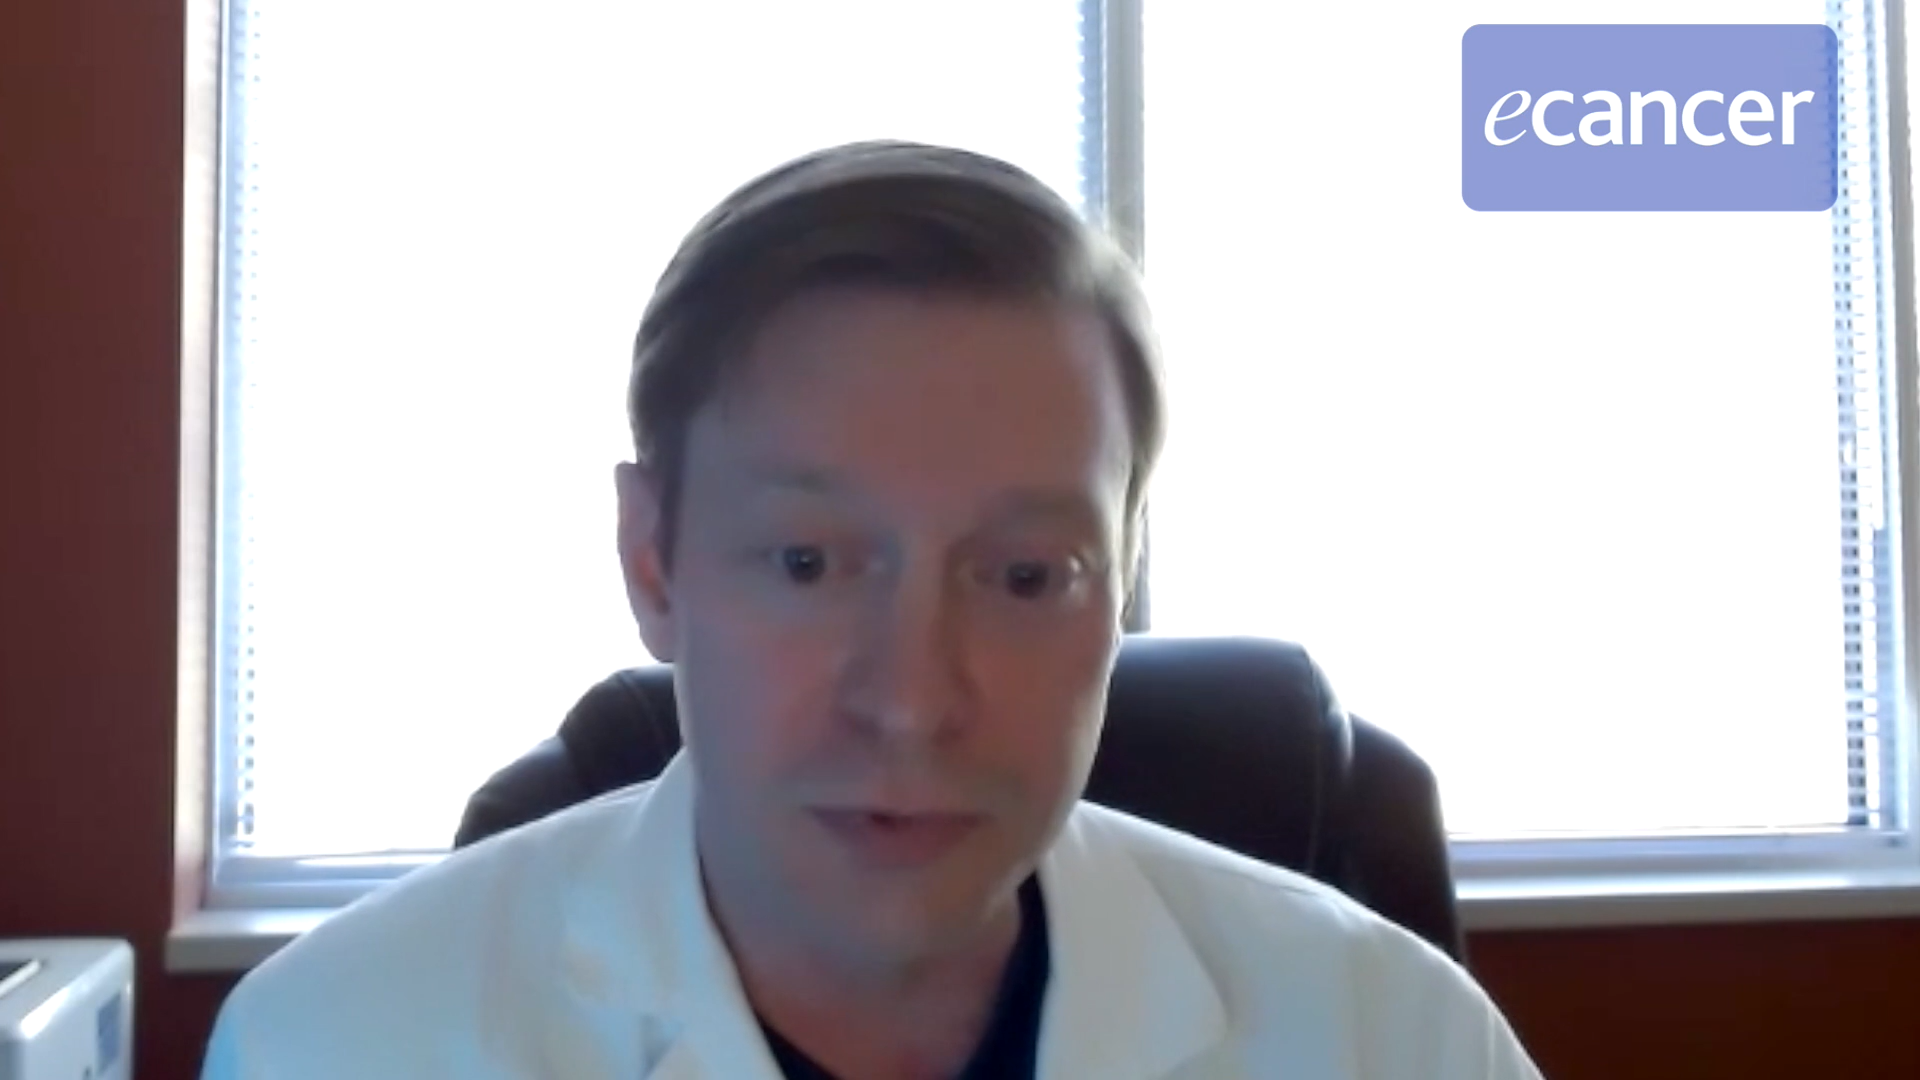 How Should We Manage Patients with Acute Lymphoblastic Leukemia During COVID-19?